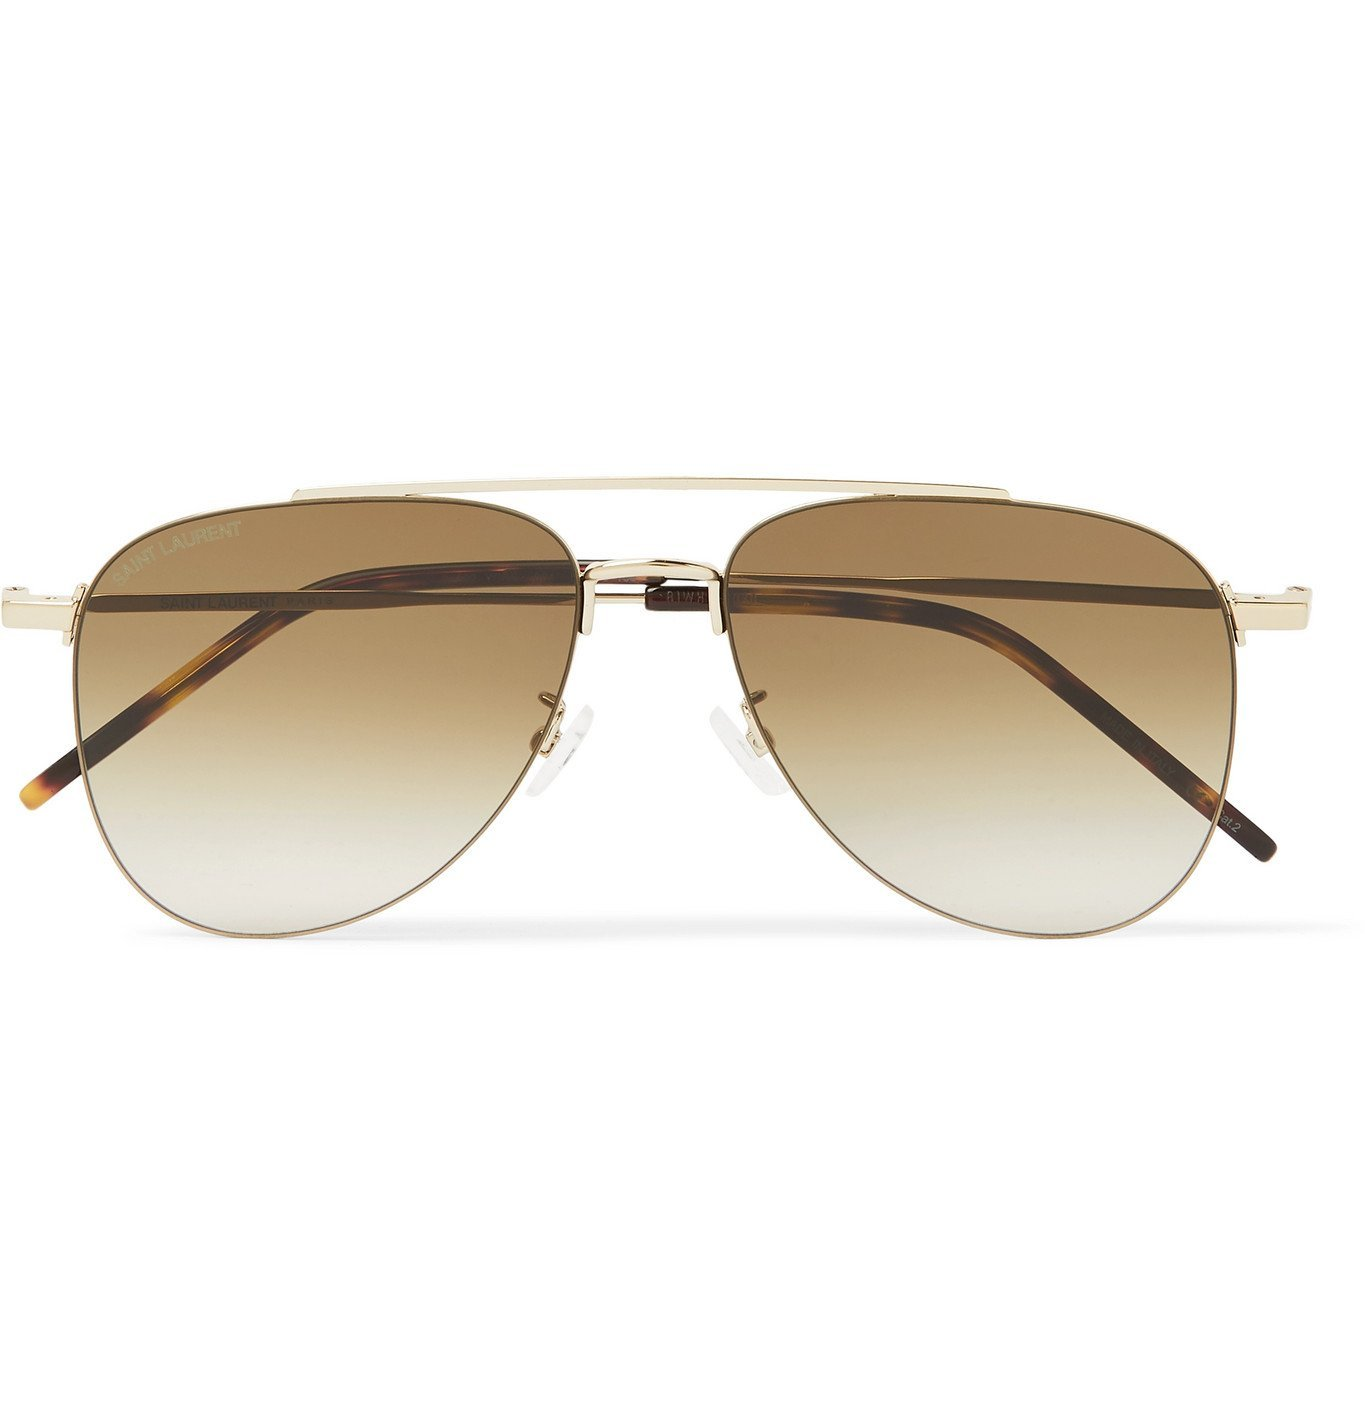 Photo: SAINT LAURENT - Aviator-Style Gold-Tone Sunglasses - Gold